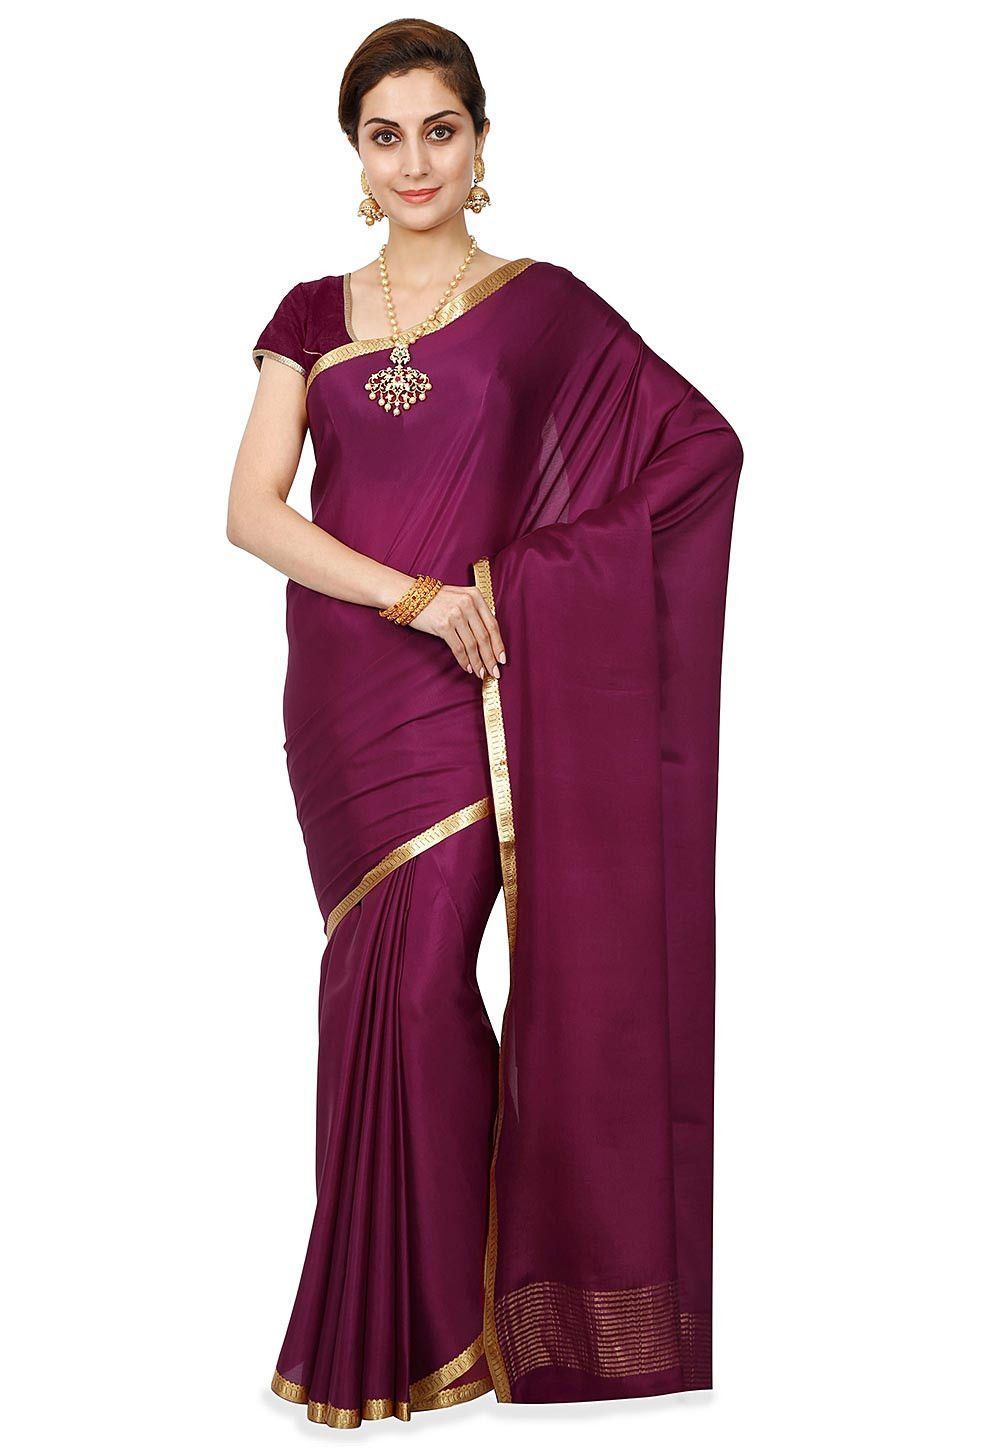 97dcf4f415 Buy Pure Mysore Crepe Silk Saree in Wine Purple online, Item code: SHU1047,  Color: Purple, Occasion: Wedding, Festive, Style: Mysore Silk, Work:  Traditional ...